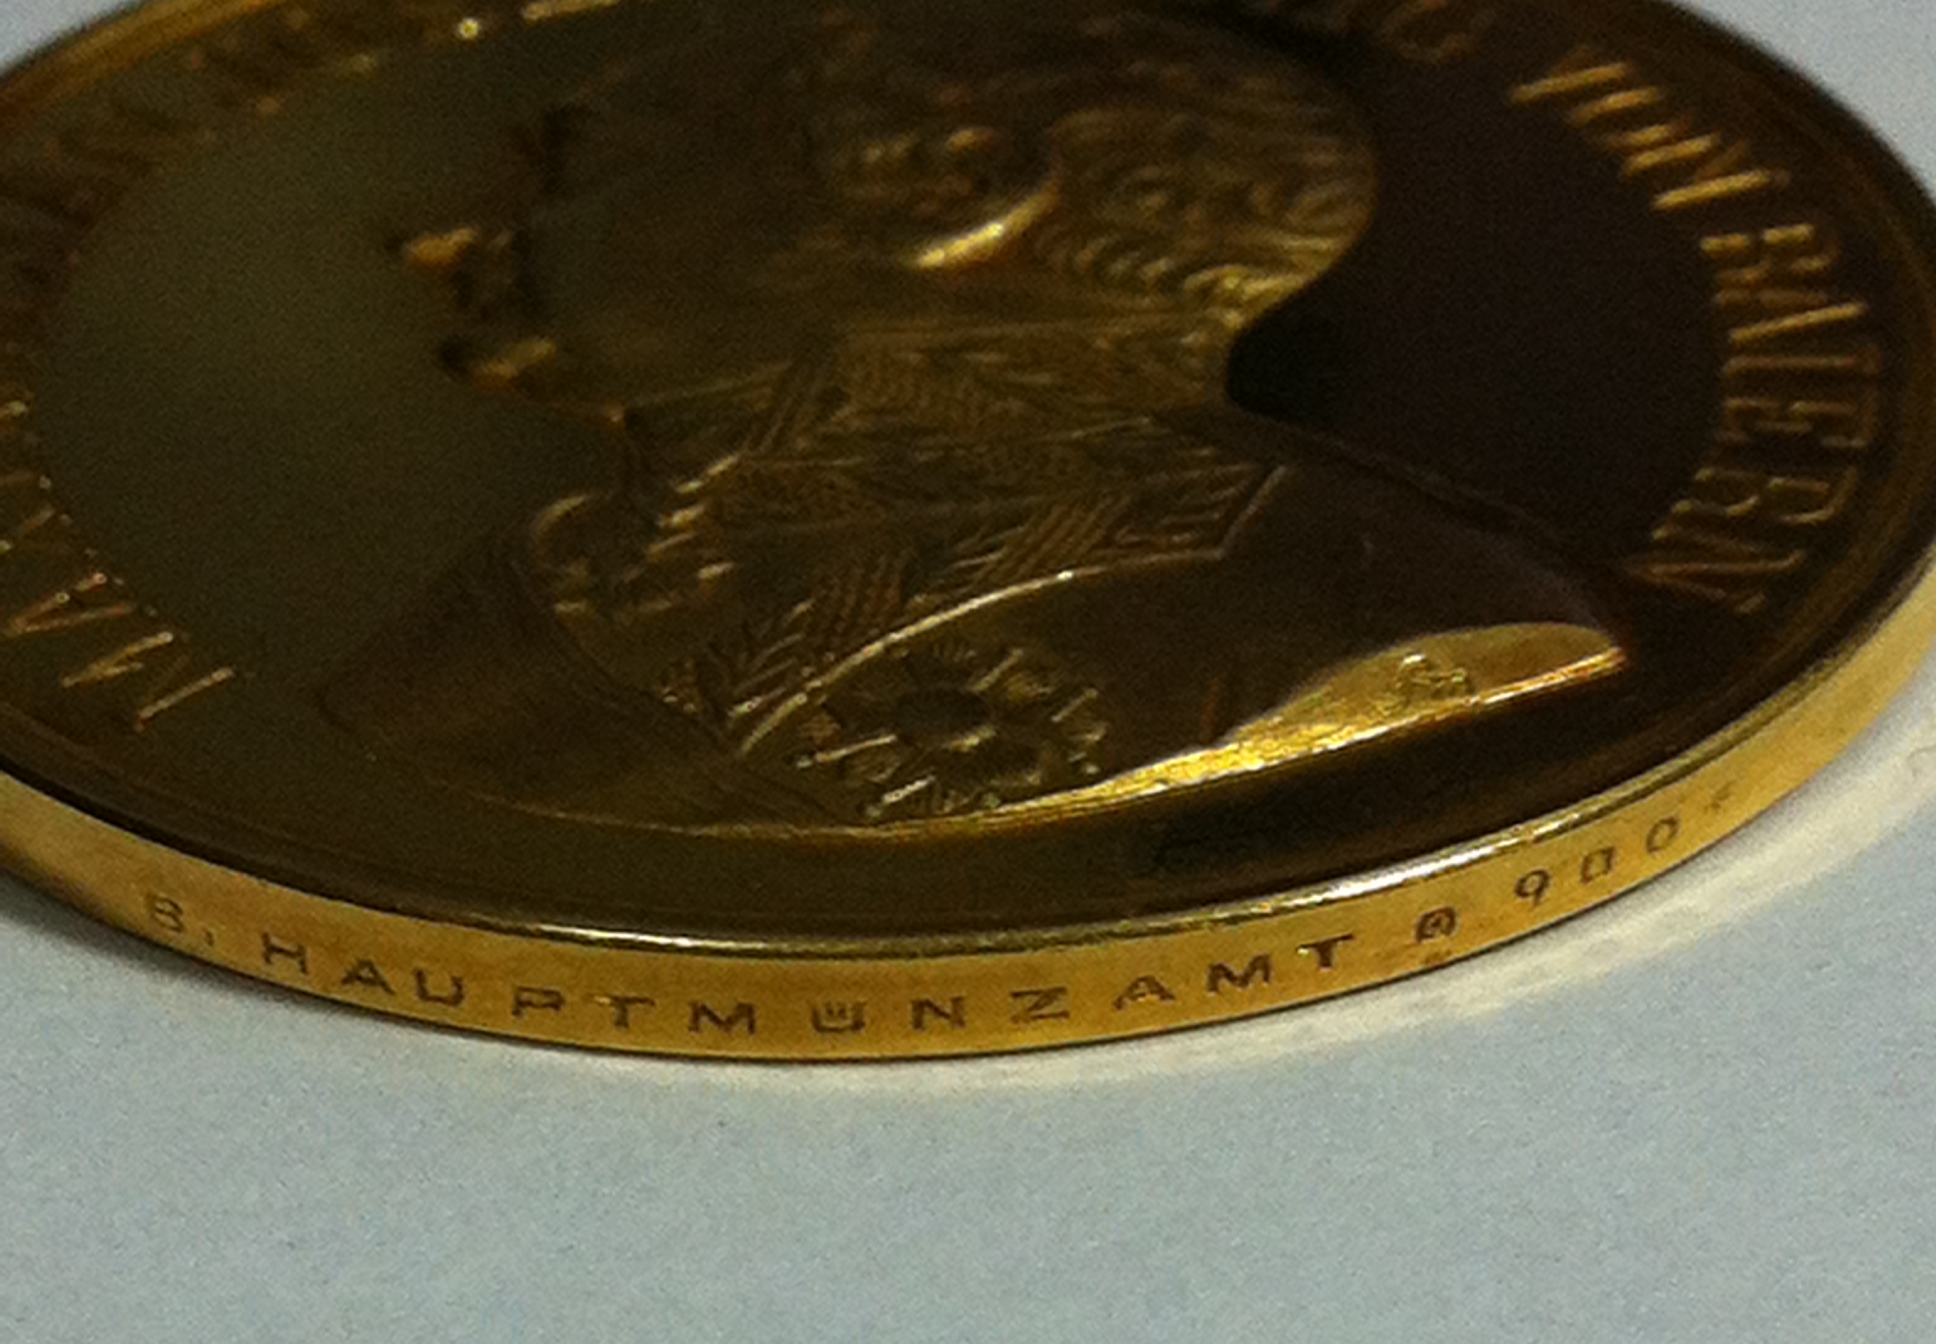 Figure 8-Detail of the Gold Bavarian Bravery Medal showing the die-sinker's mark and edge inscription. Image from author's archive.